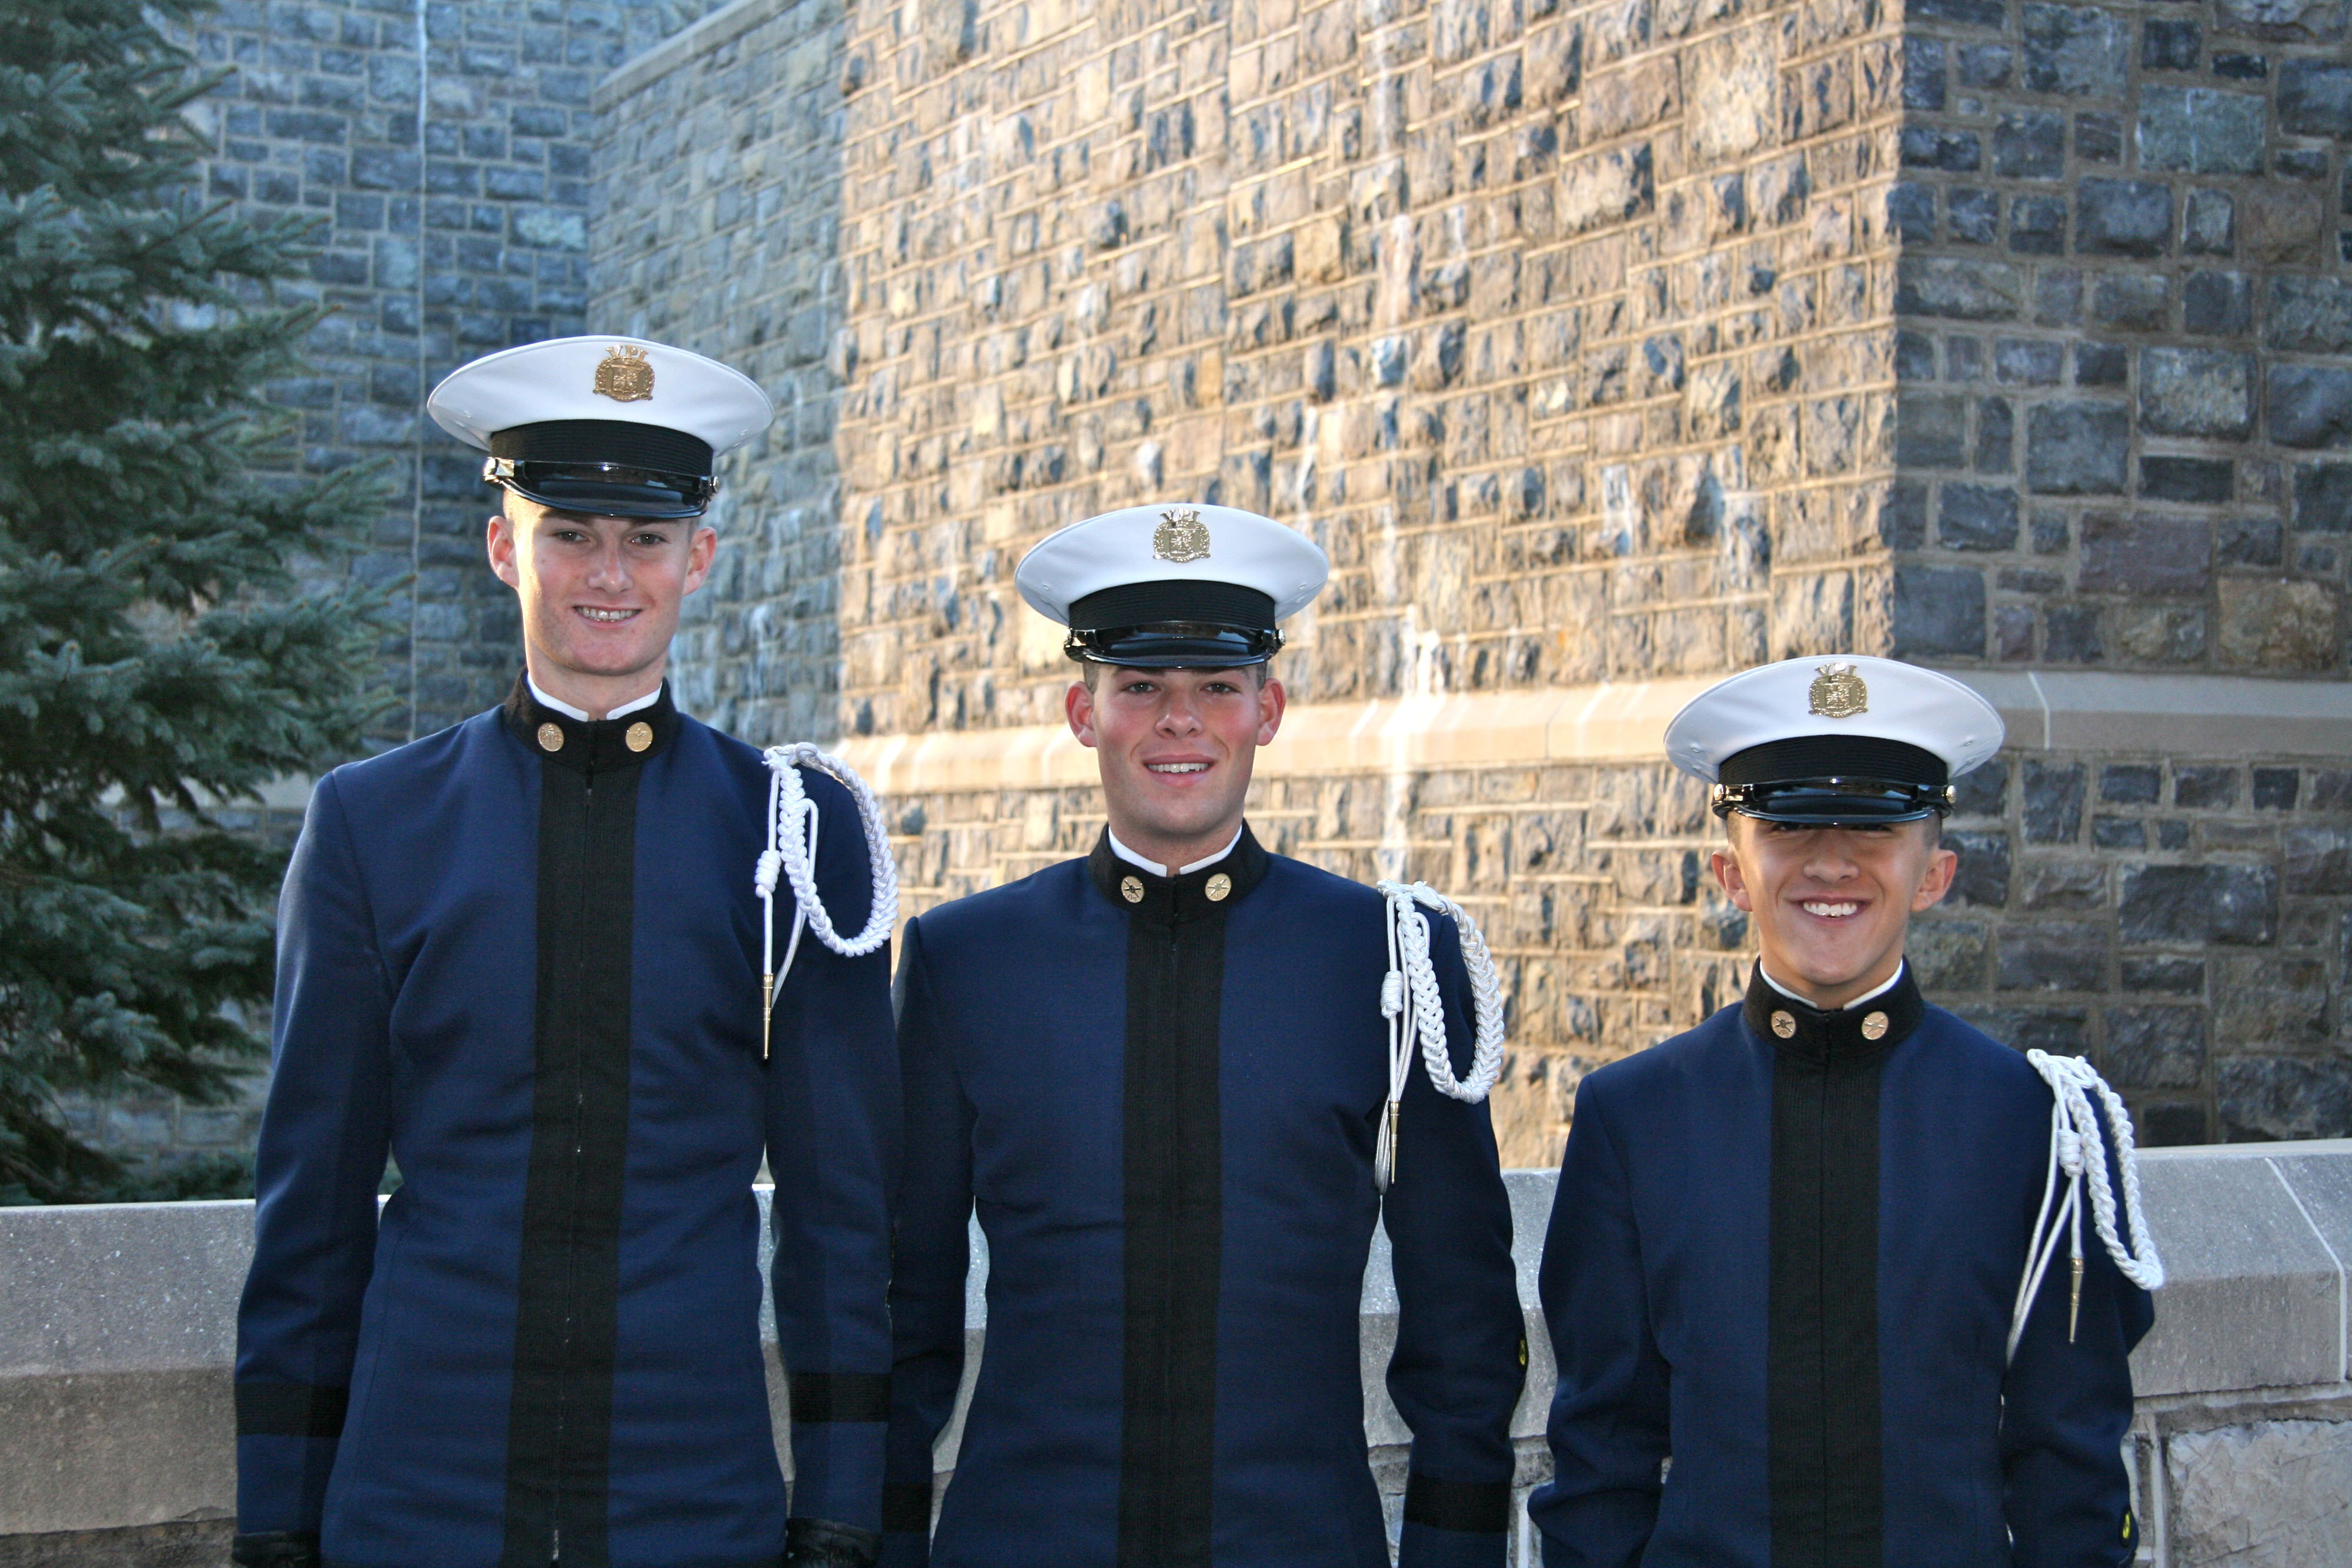 From left to right are Cadets Keith Himmelberger, Alexander Zuchowicz, and Matthew Gurski